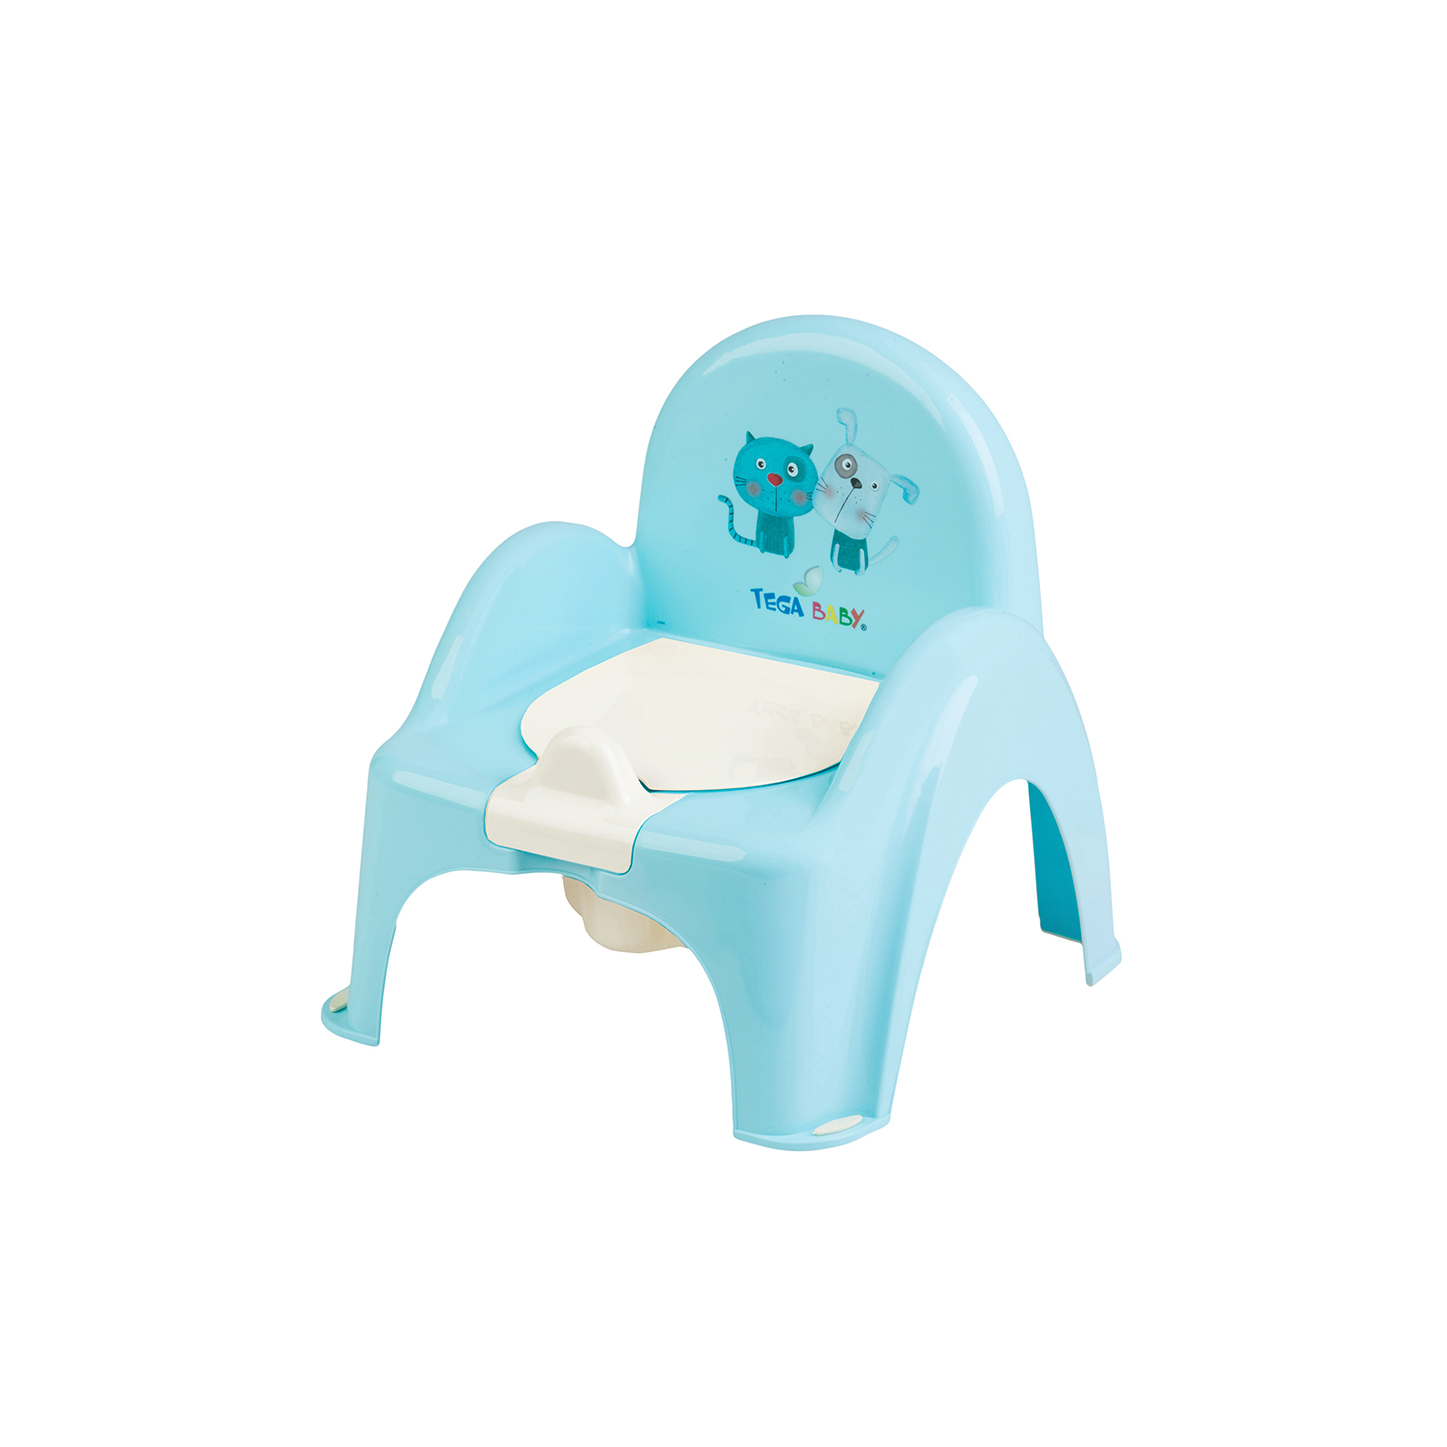 Chaise Pot De Chambre Pot Chaise De Toilette Musical Pour Enfant Dog Andcat Mode